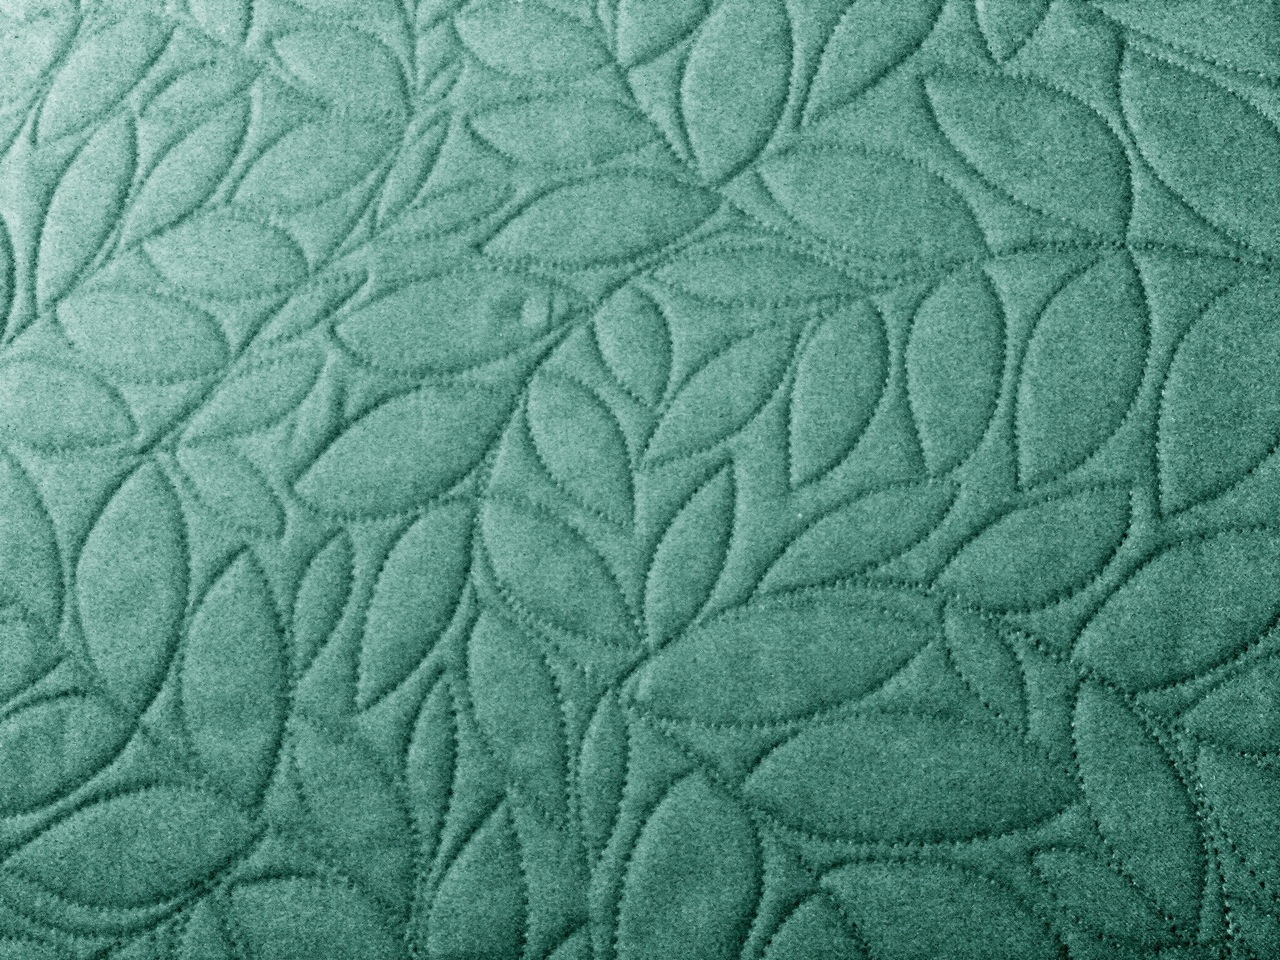 Simple Free Motion Quilting Patterns : 15 Simple Free Motion Quilting Designs Images - Free Motion Quilting Pattern, Free Motion ...